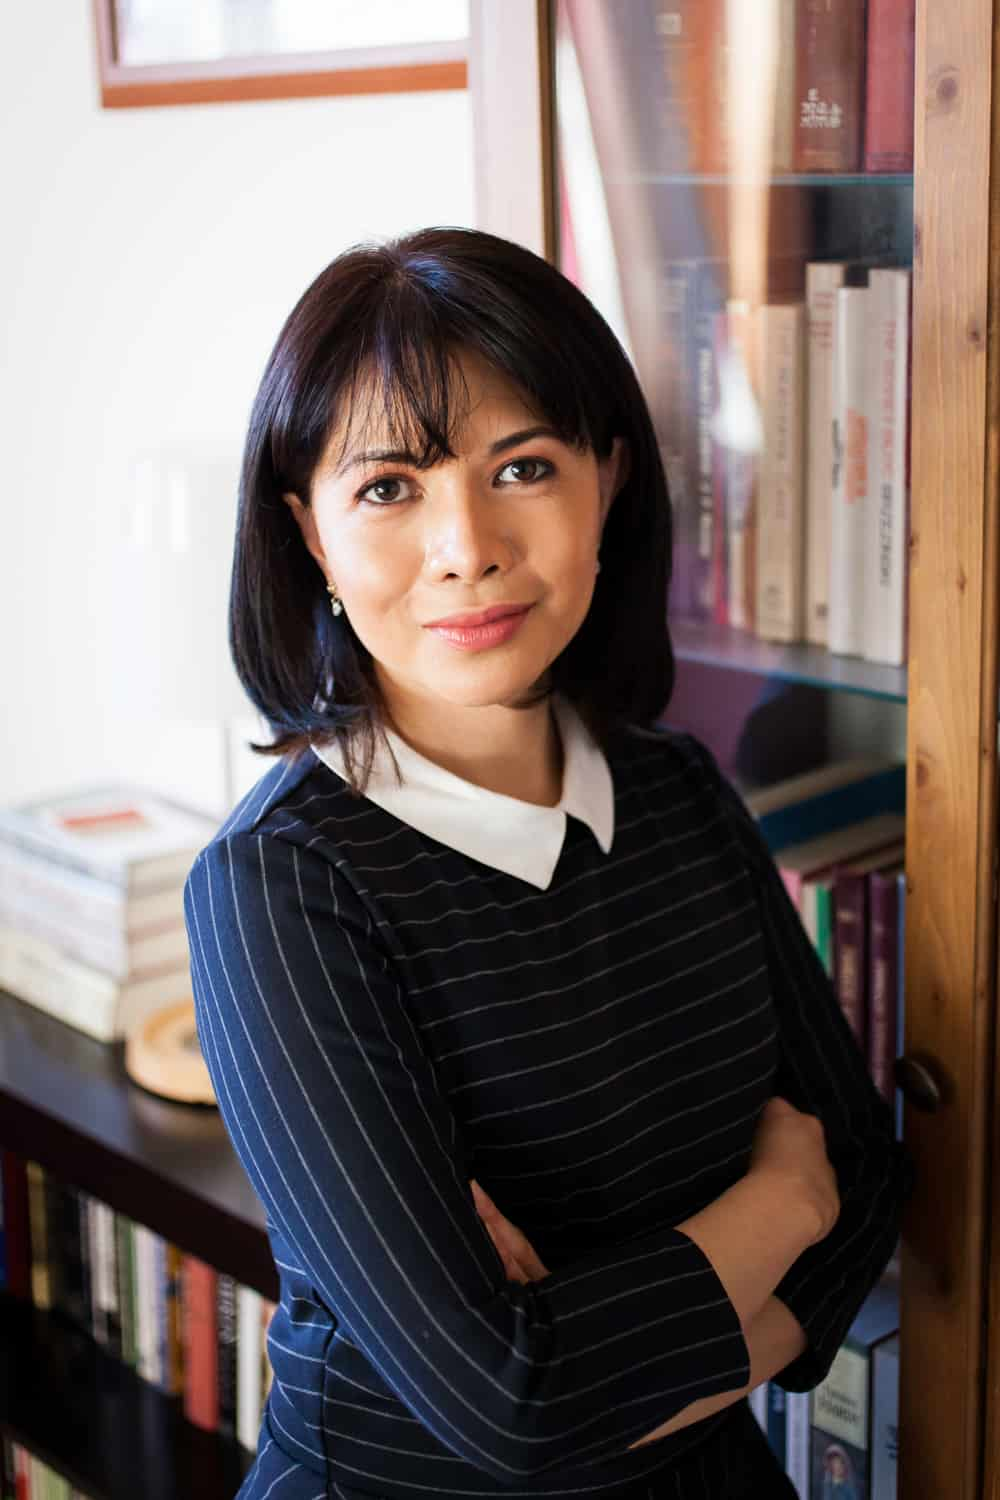 Woman leaning against bookshelf wearing pinstripe blouse for an article on online portrait tips